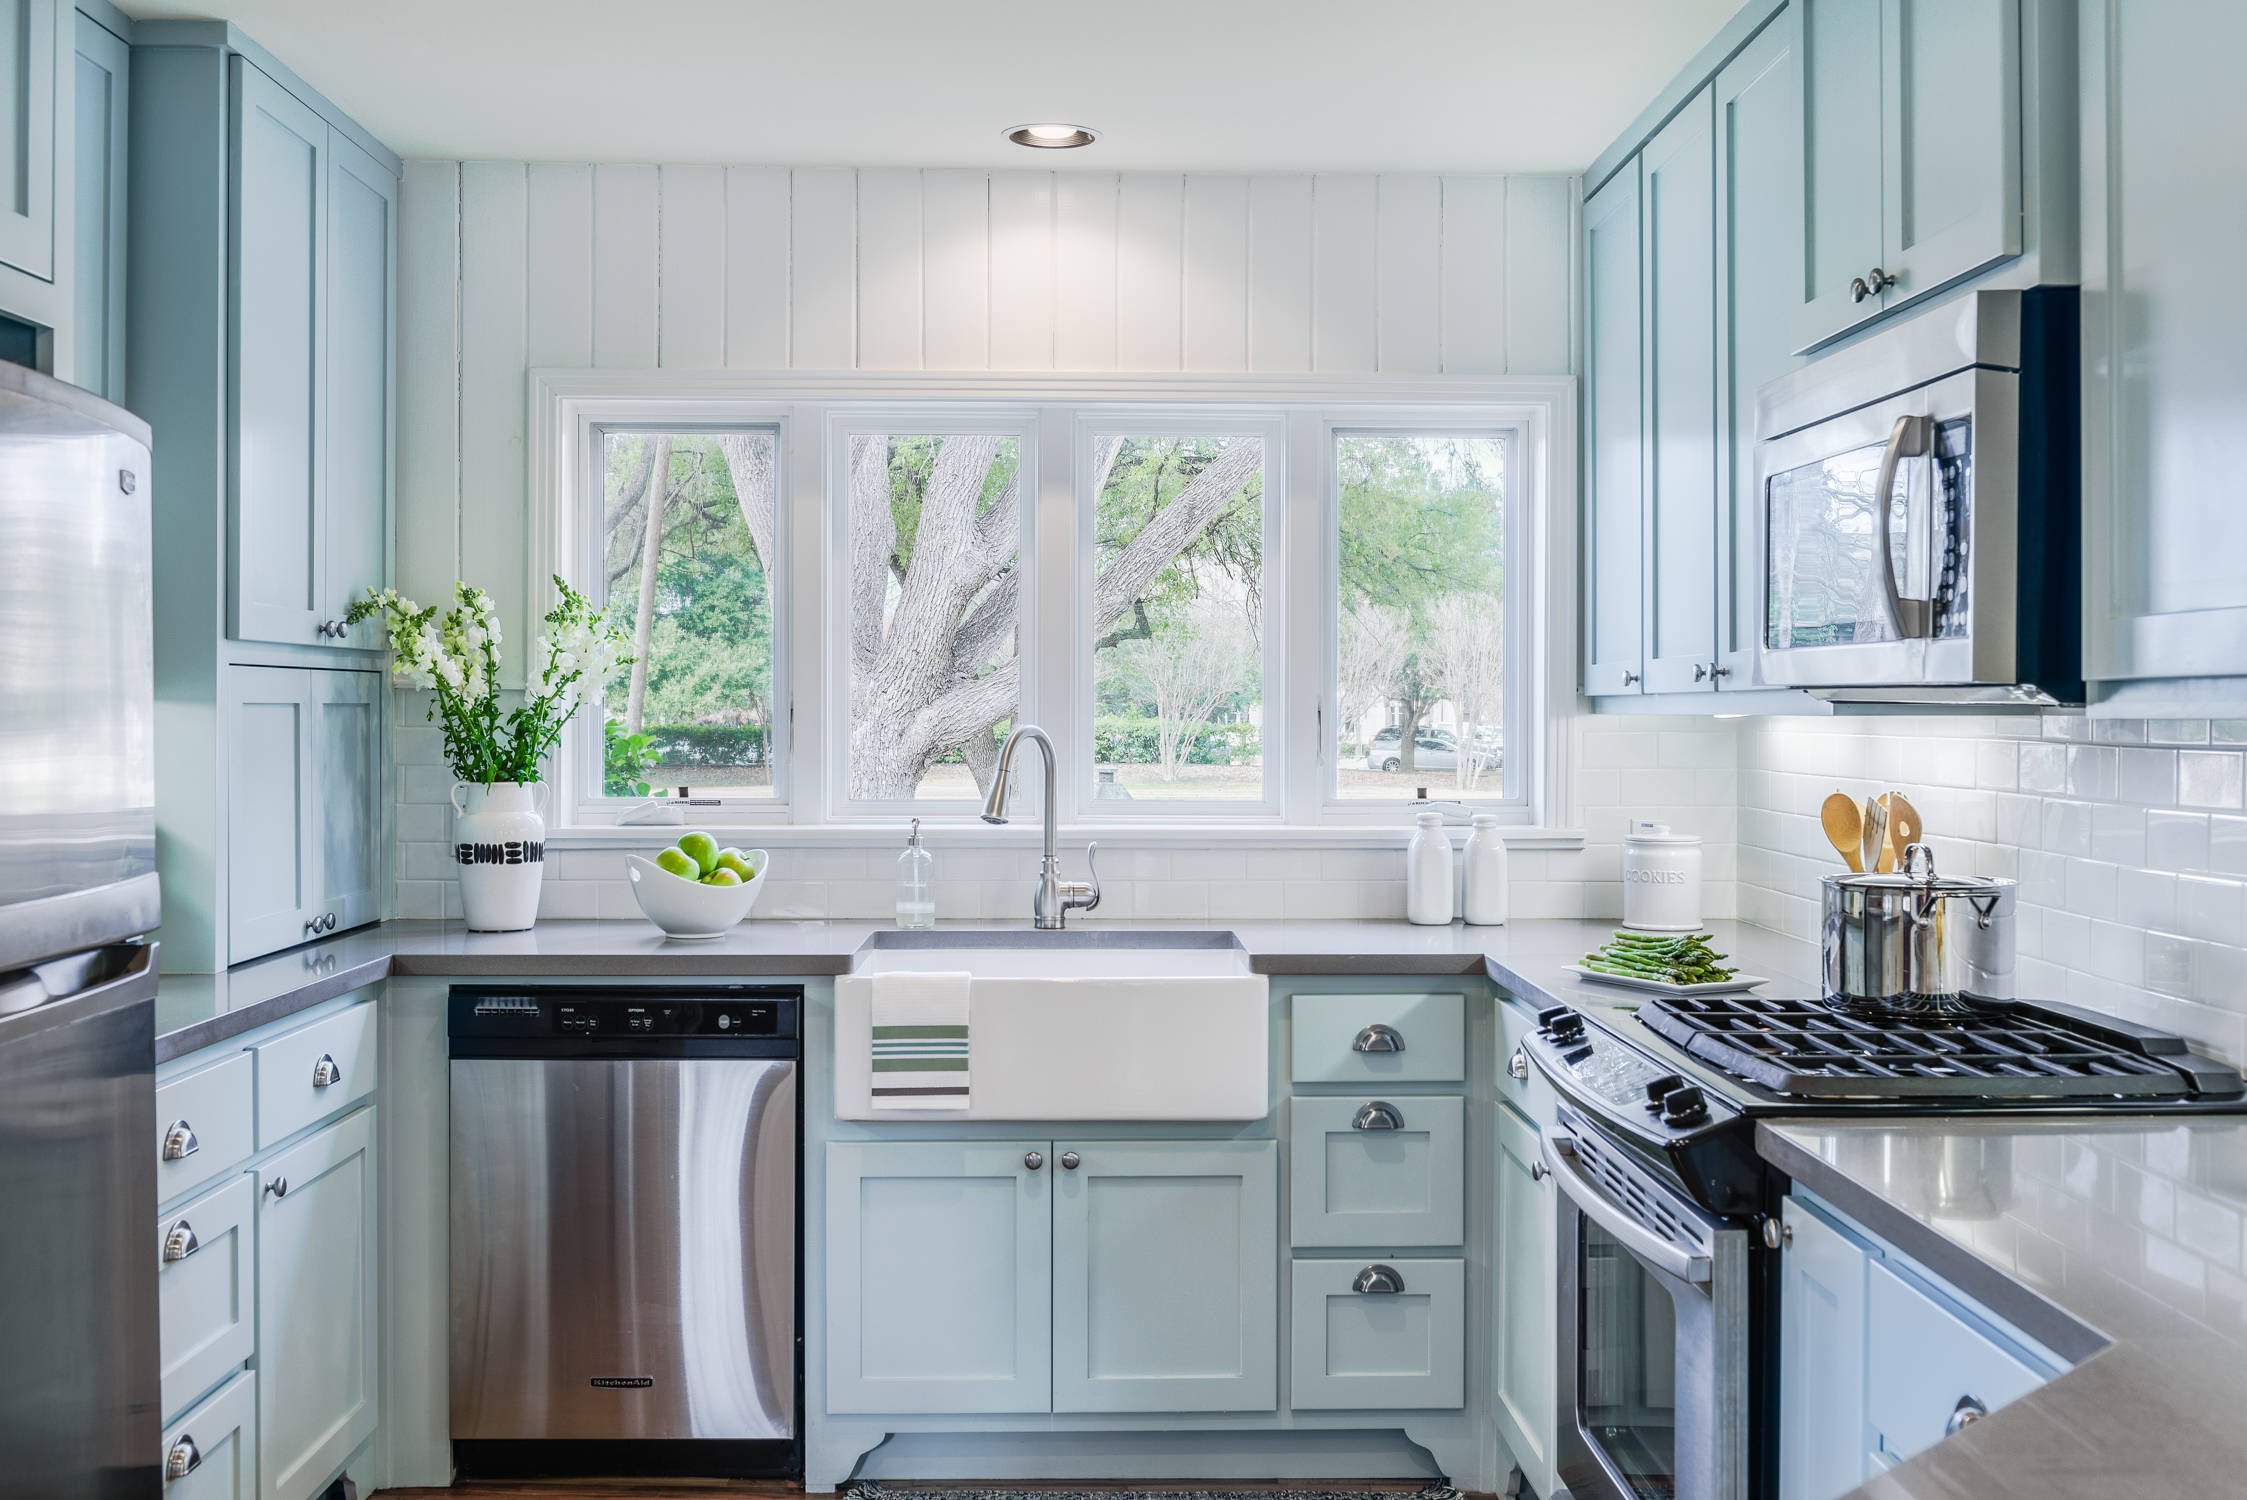 insta baby blue kitchen - DIY Cleaning Solutions for Kitchen Cabinets